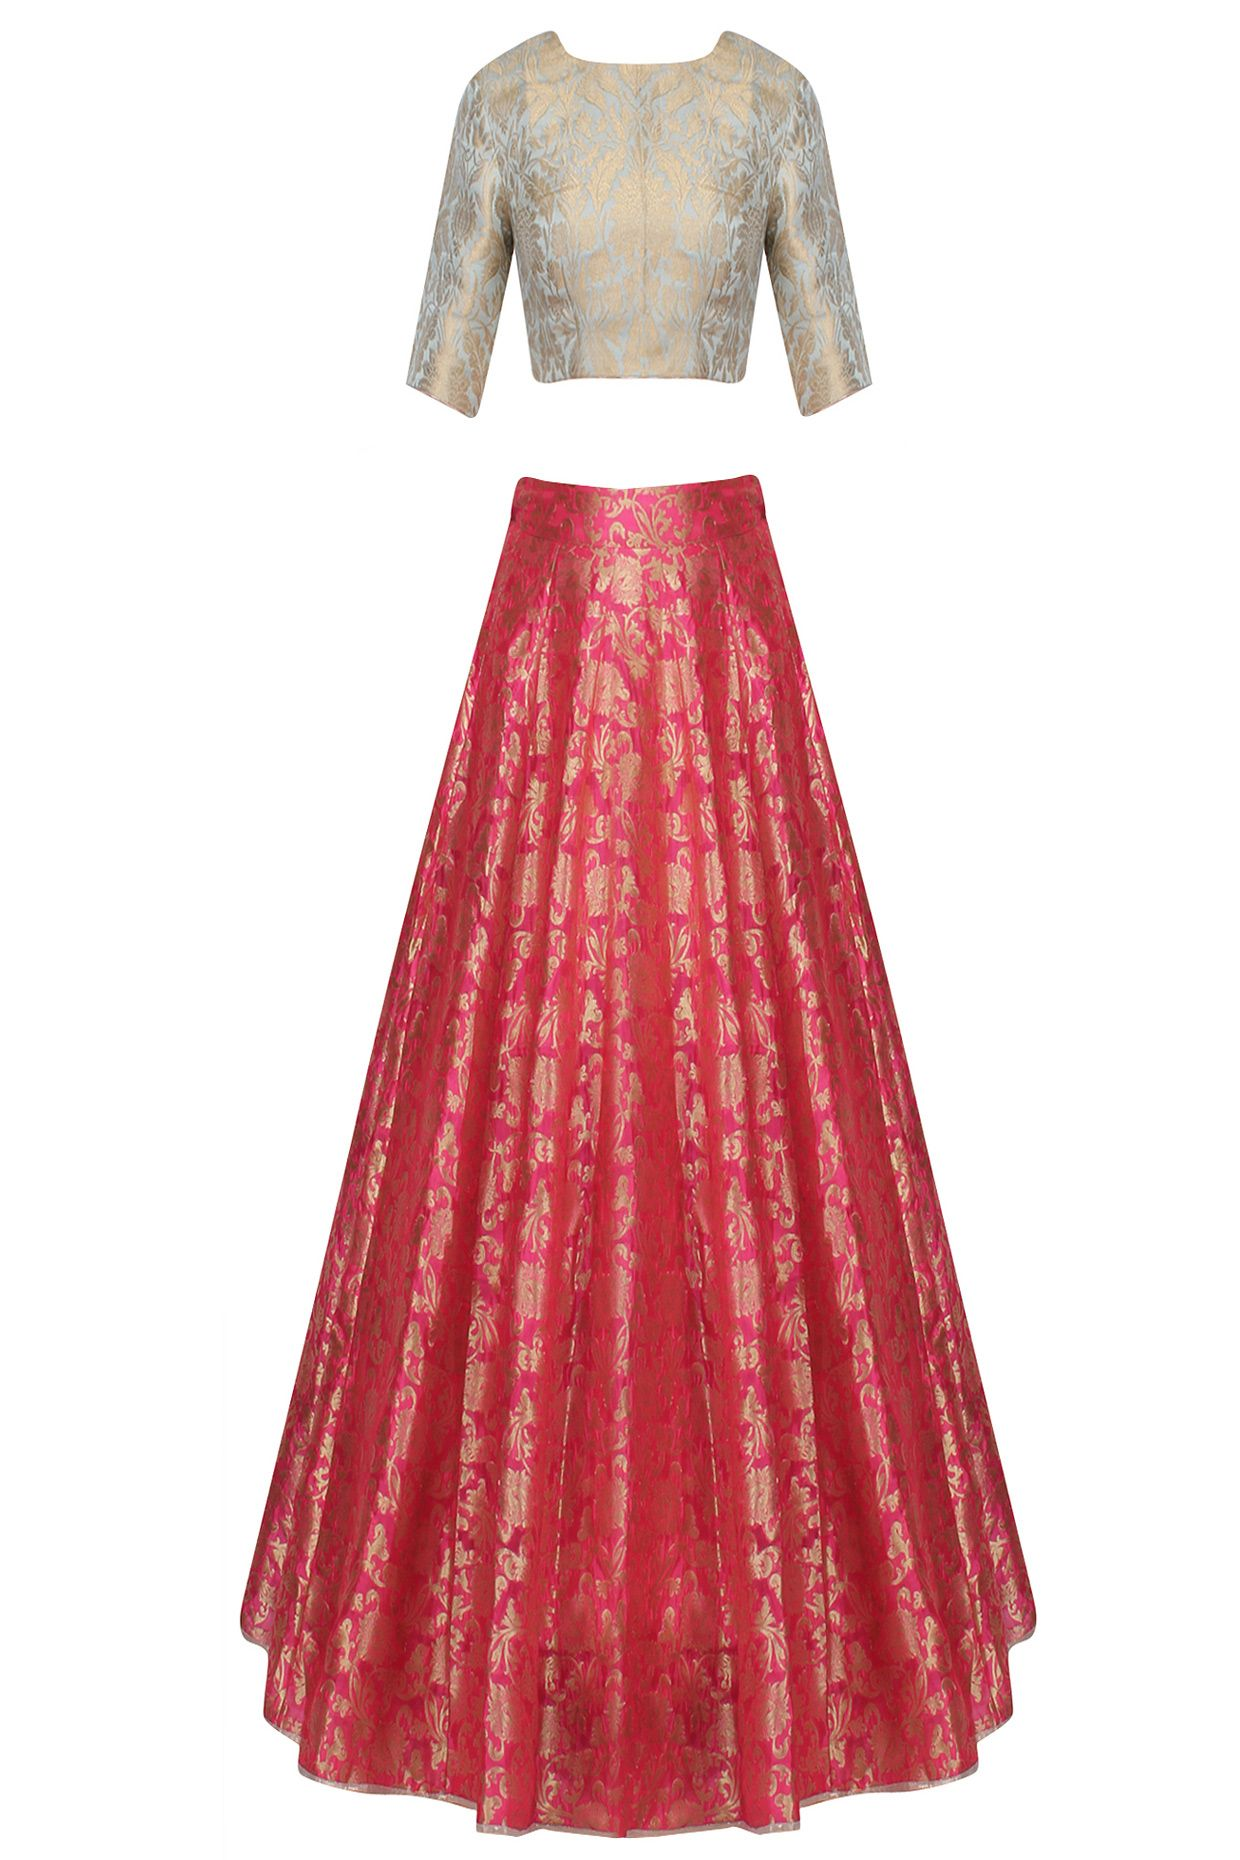 Aqua blue and pink ornate brocade lehenga set available only at